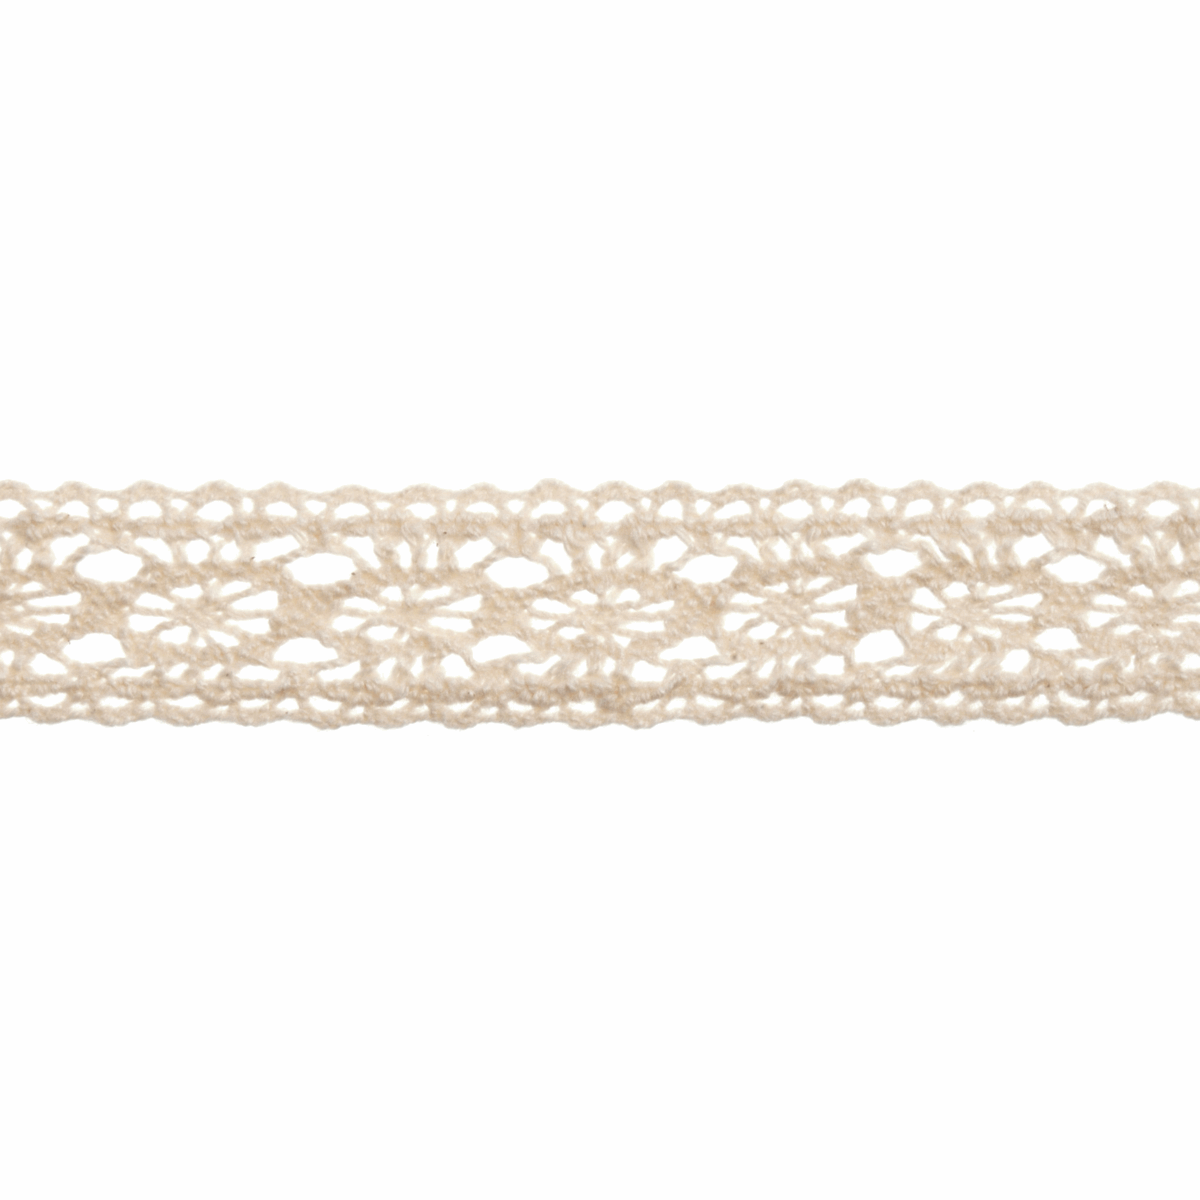 Picture of Cotton Lace: 5m x 15mm: Natural